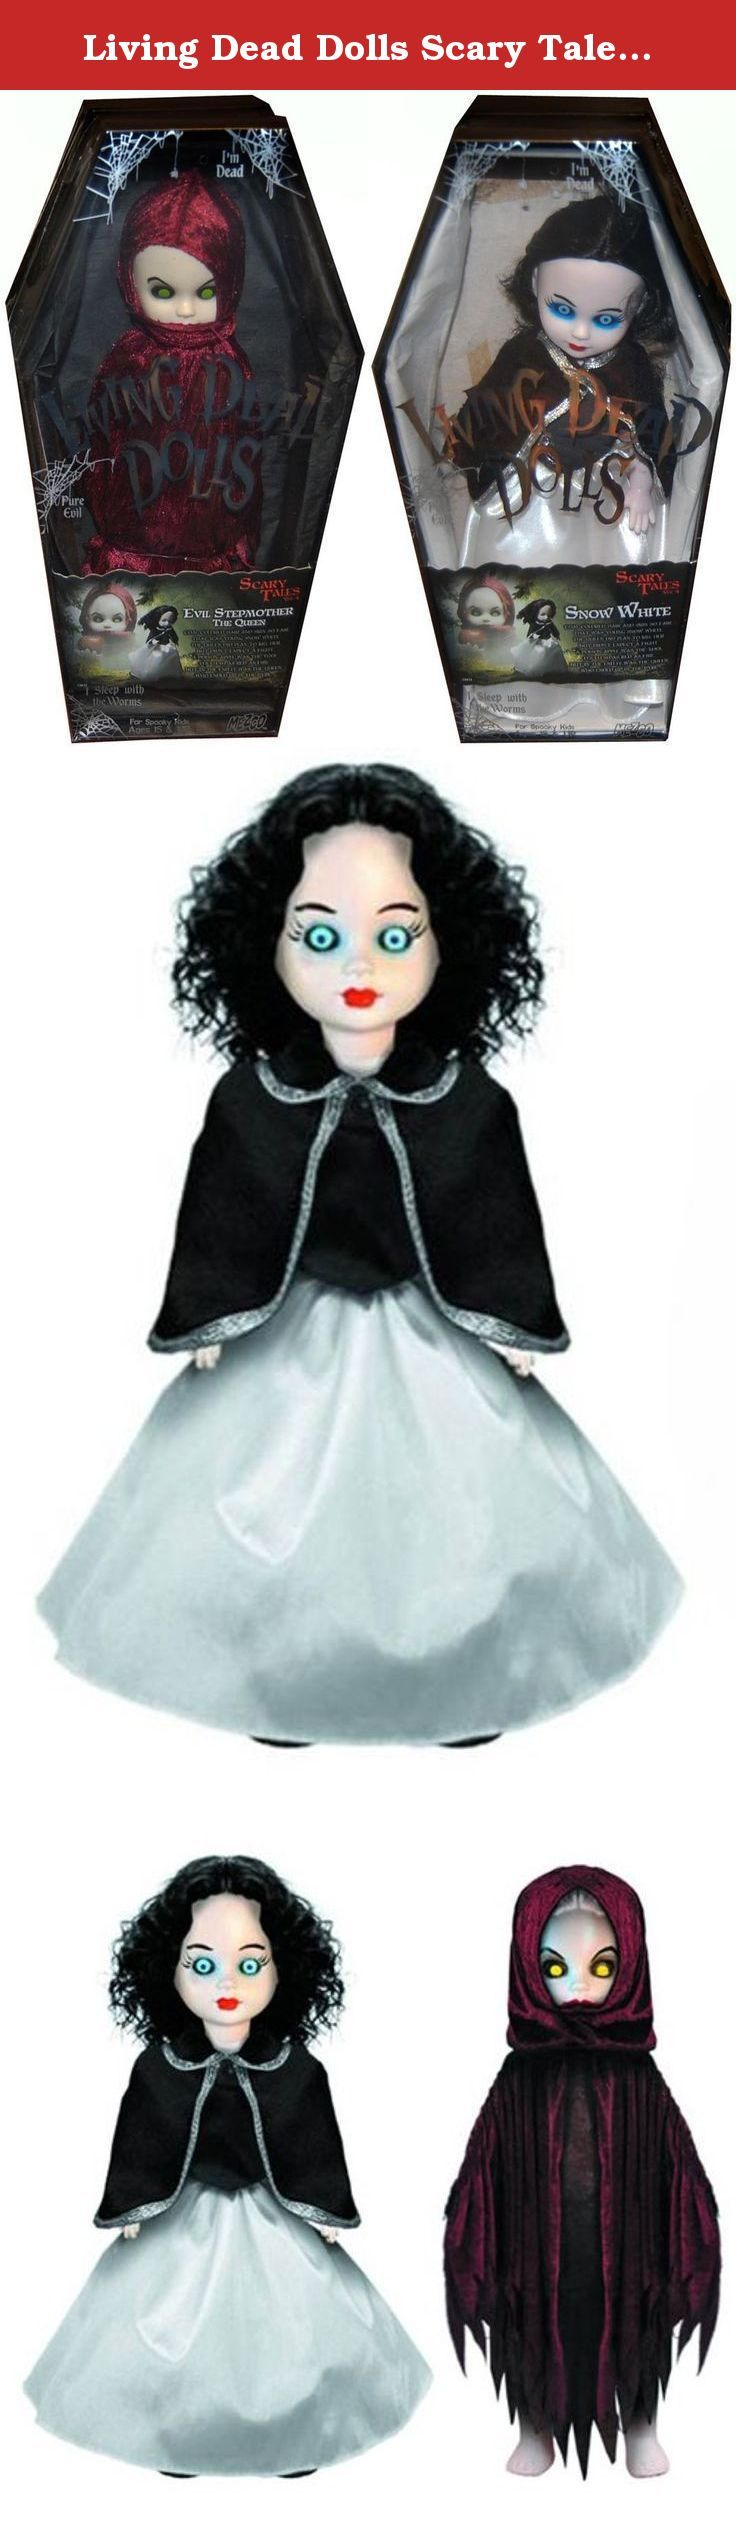 Living Dead Dolls Scary Tales #4 Snow White Set Of 2. Set of 2 includes:.